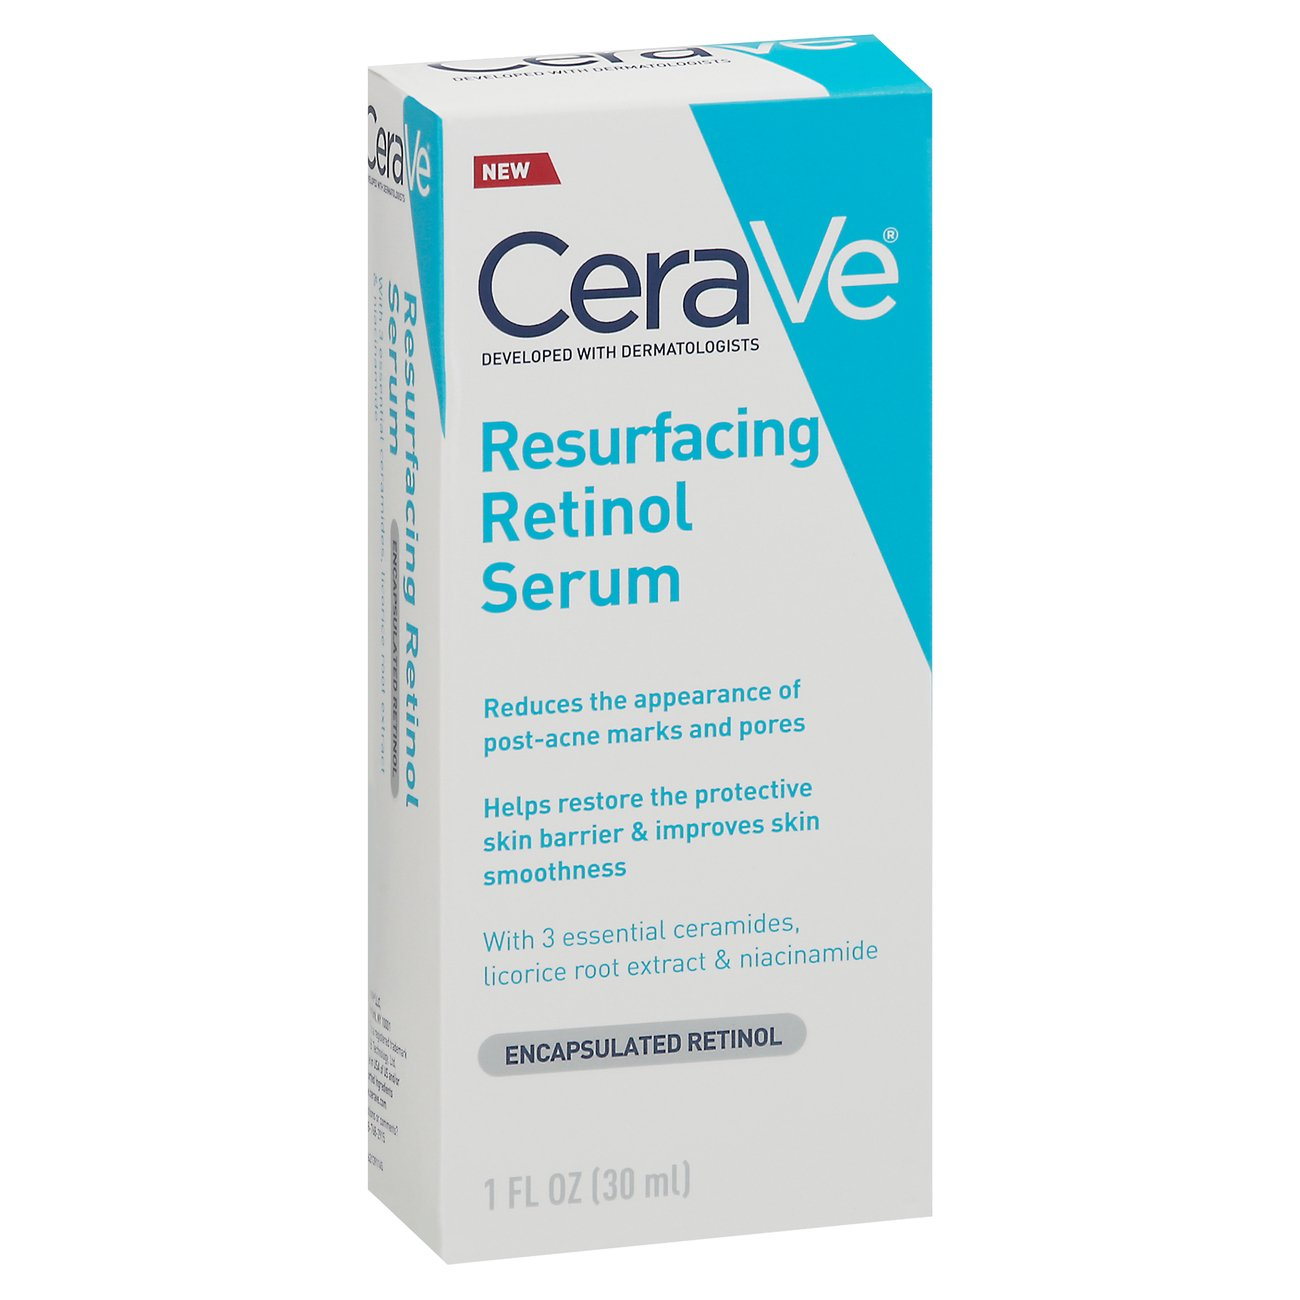 Cerave Resurfacing Retinol Serum Shop Facial Masks Treatments